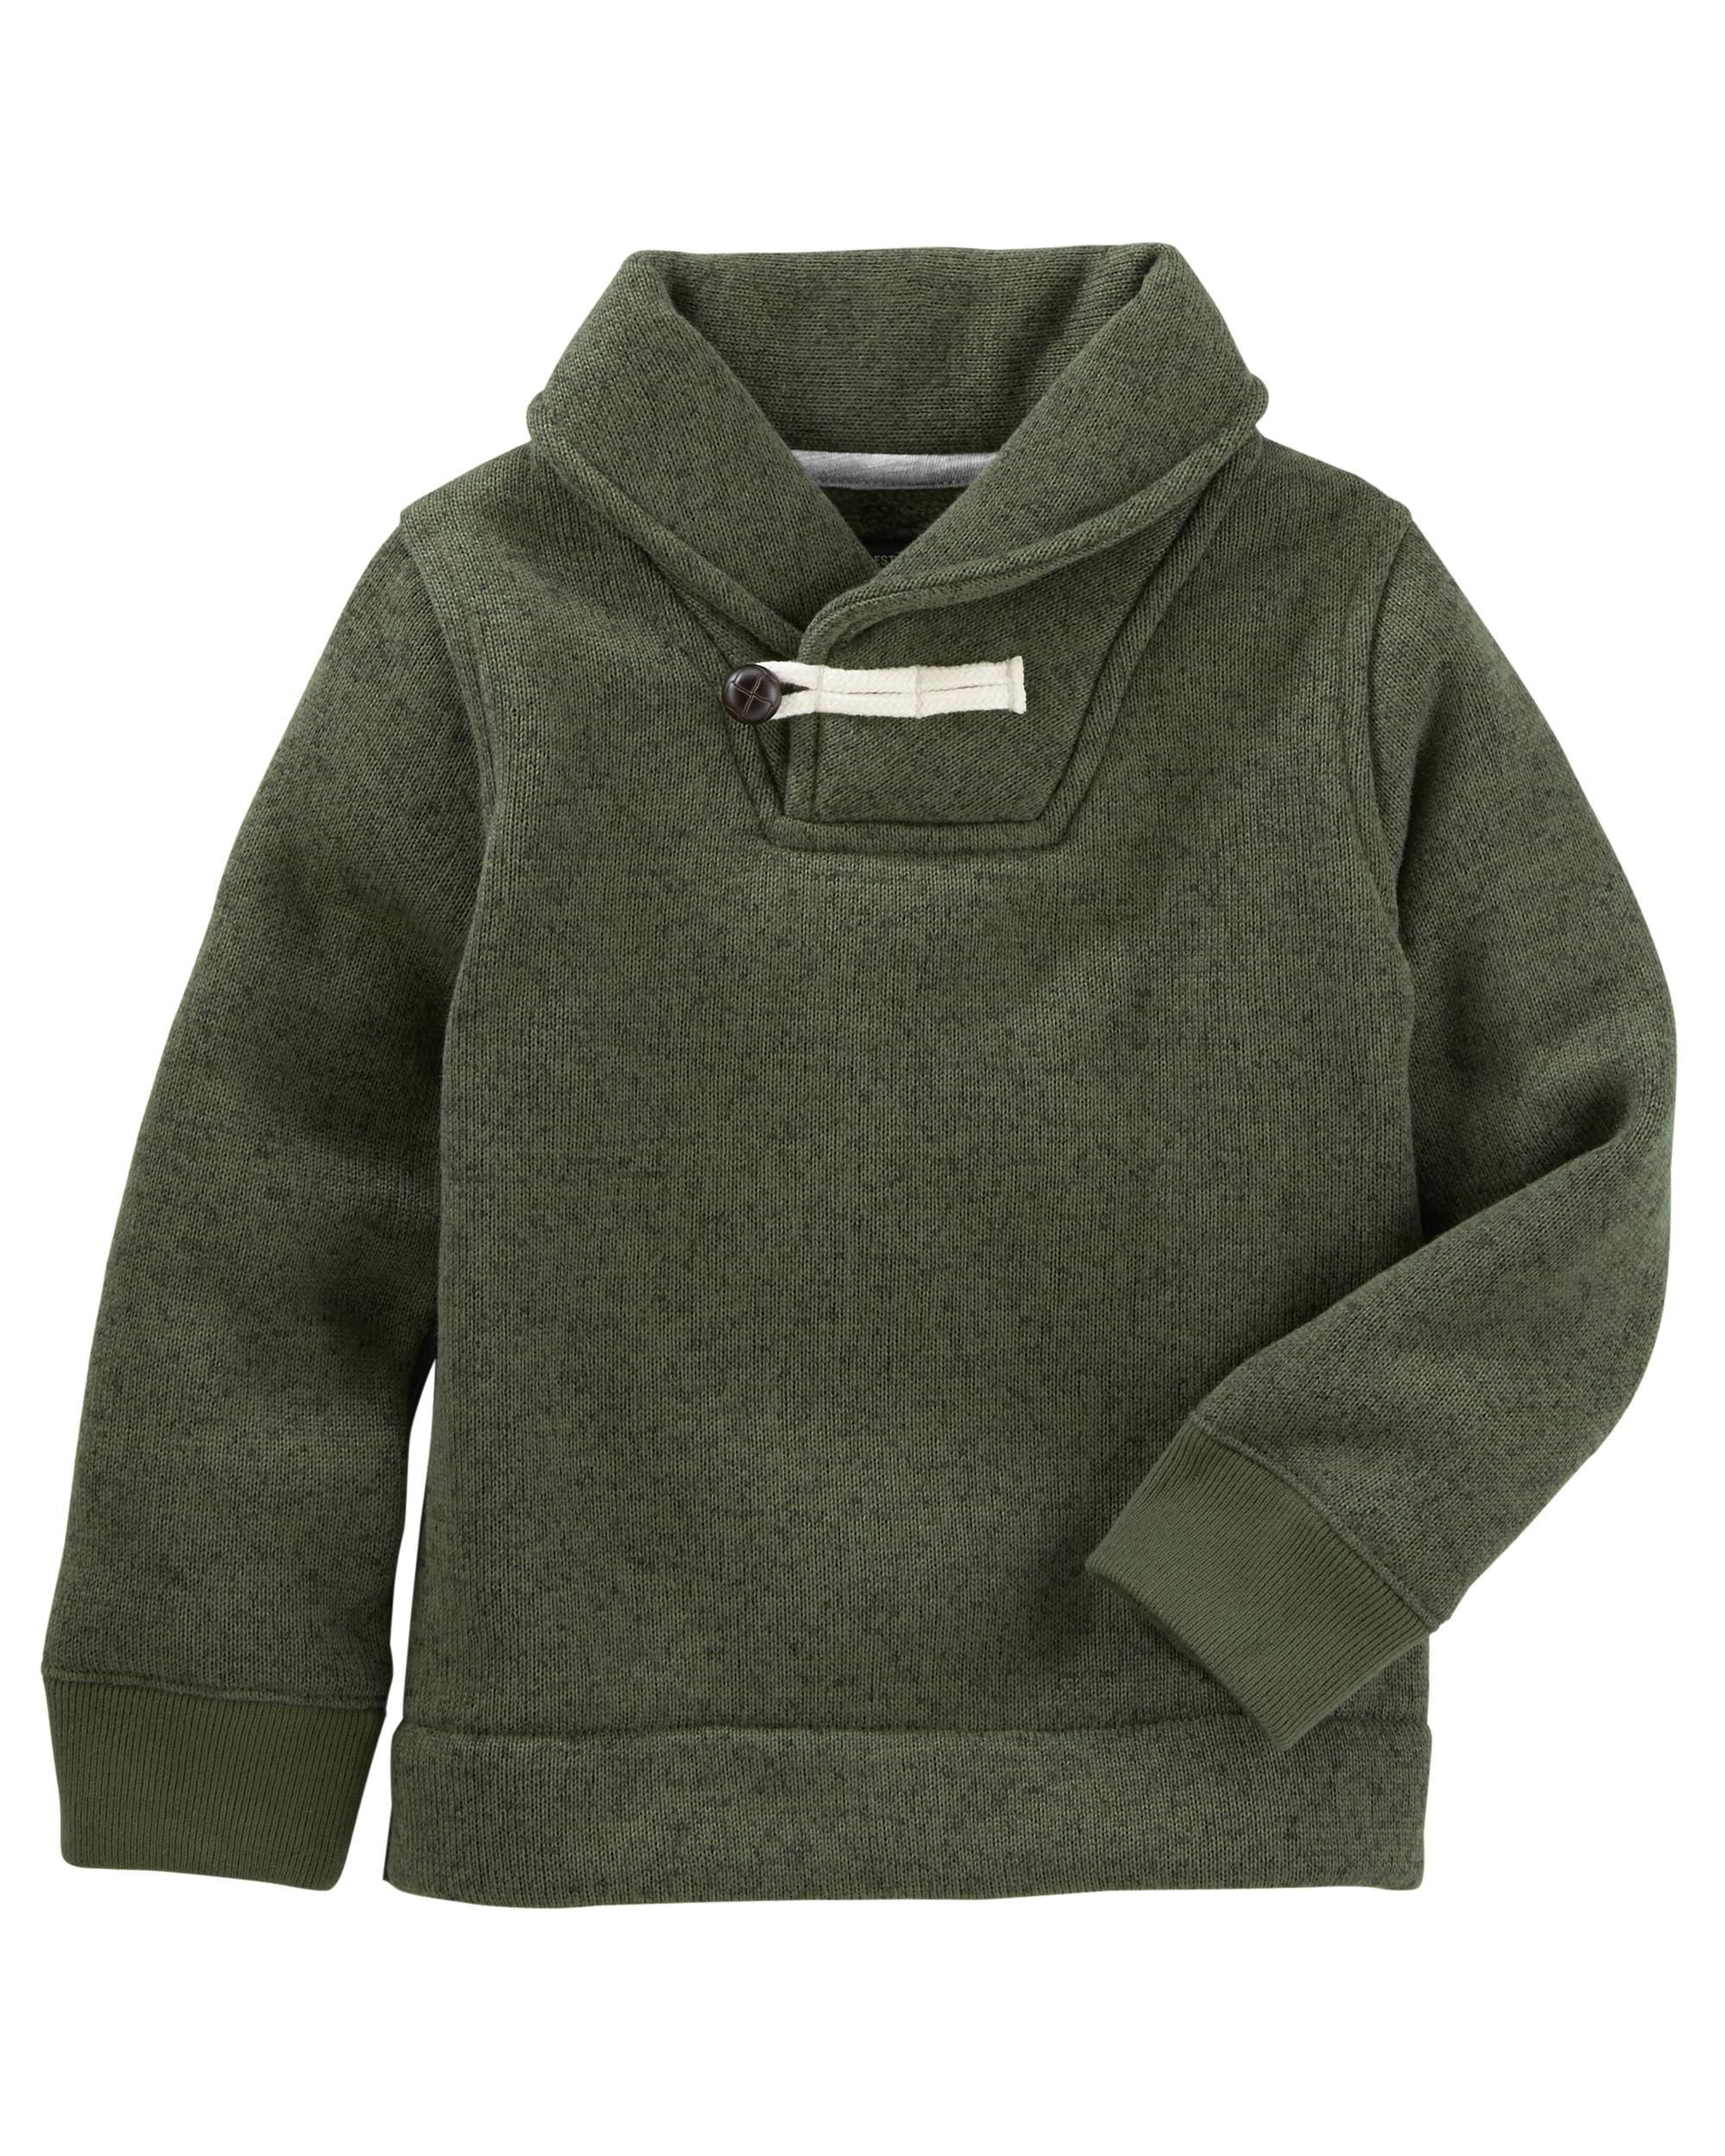 Sweater Fleece Pullover | Pullover, Toddler boys and Babies clothes